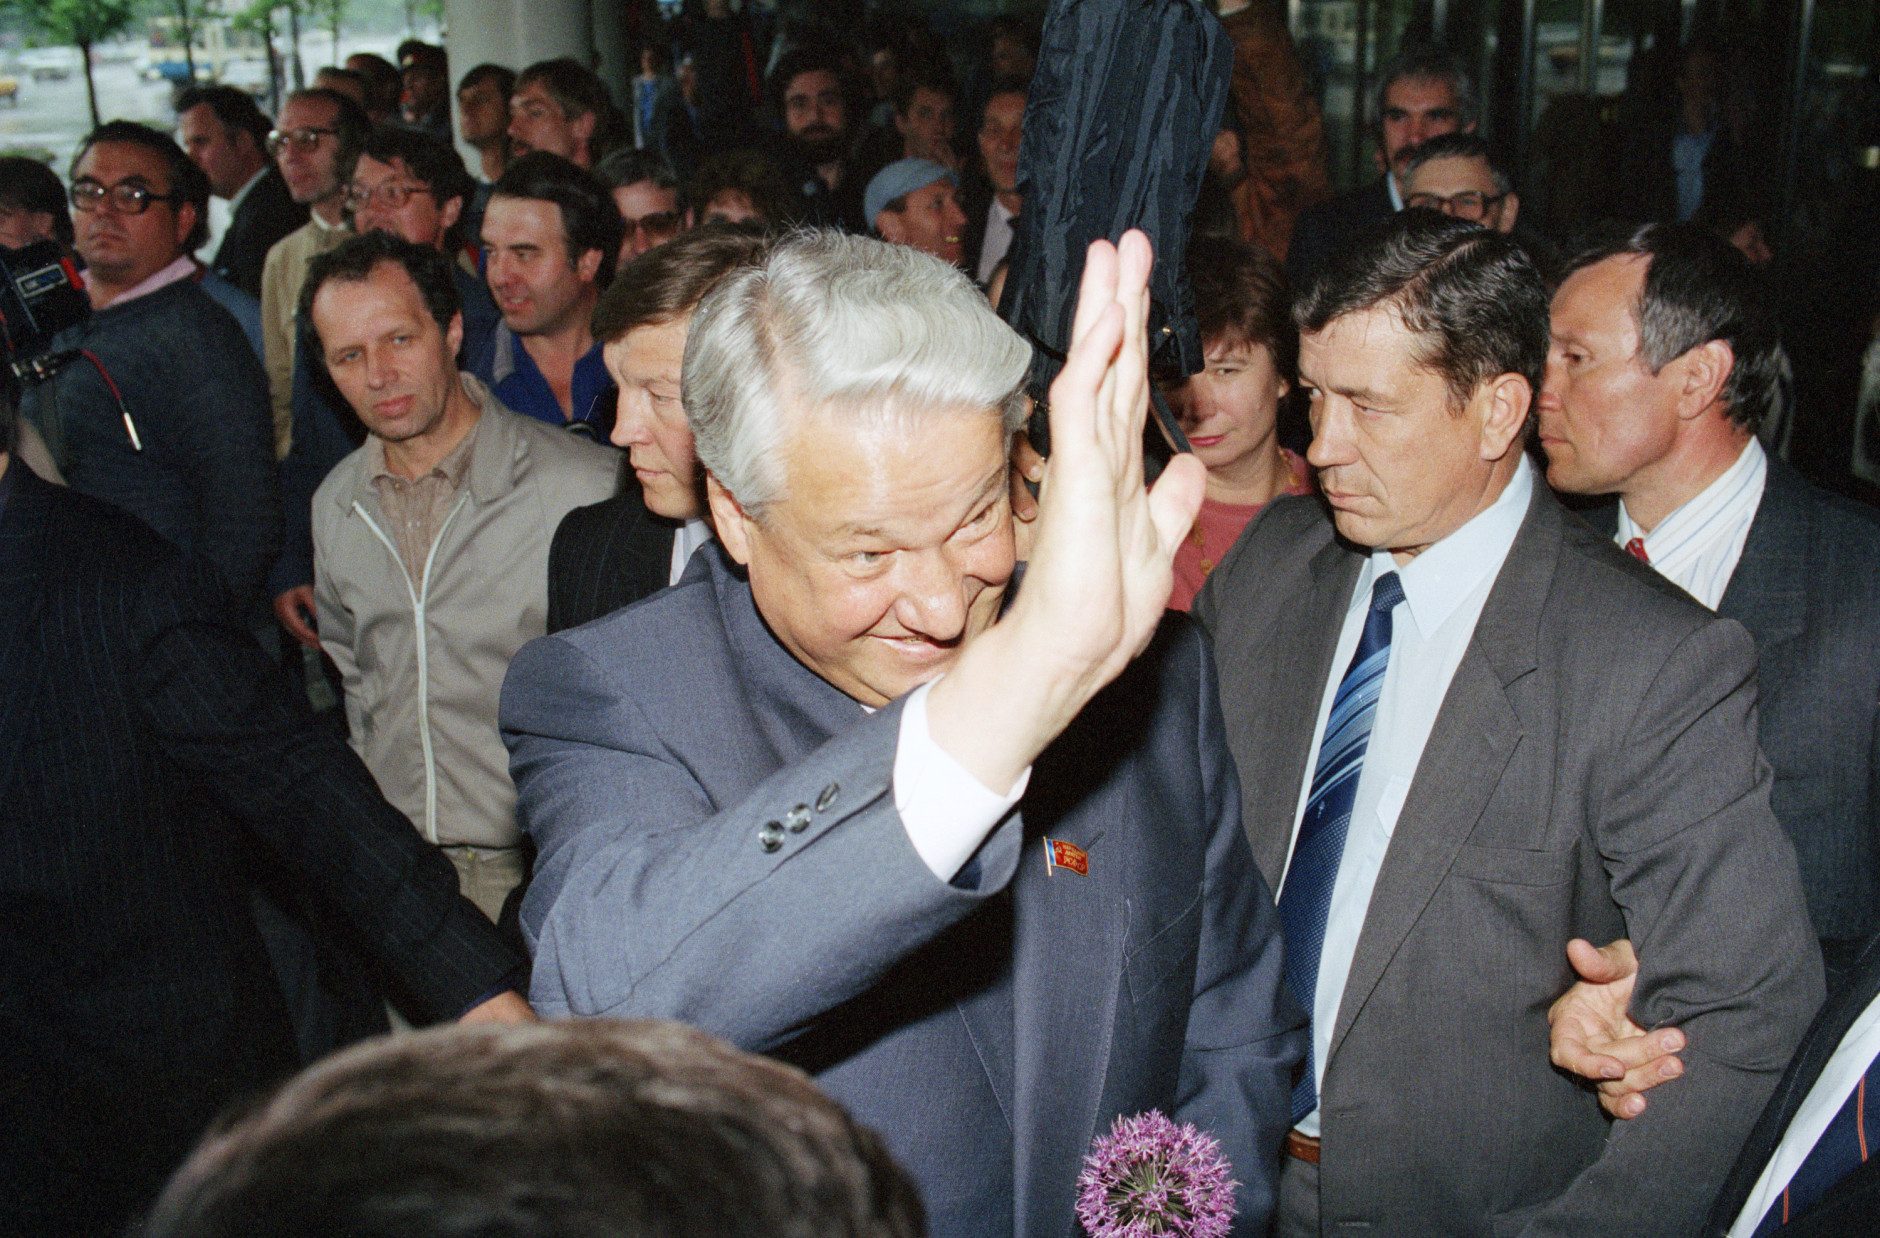 Russian leader and presidential candidate Boris Yeltsin waves to supporters after a campaign speech in Moscow, Saturday, June 1, 1991. During his speech, Yeltsin promised to meet with church officials to negotiate the return of church land confiscated by the communist party. (AP Photo/Alexander Zemlianichenko)